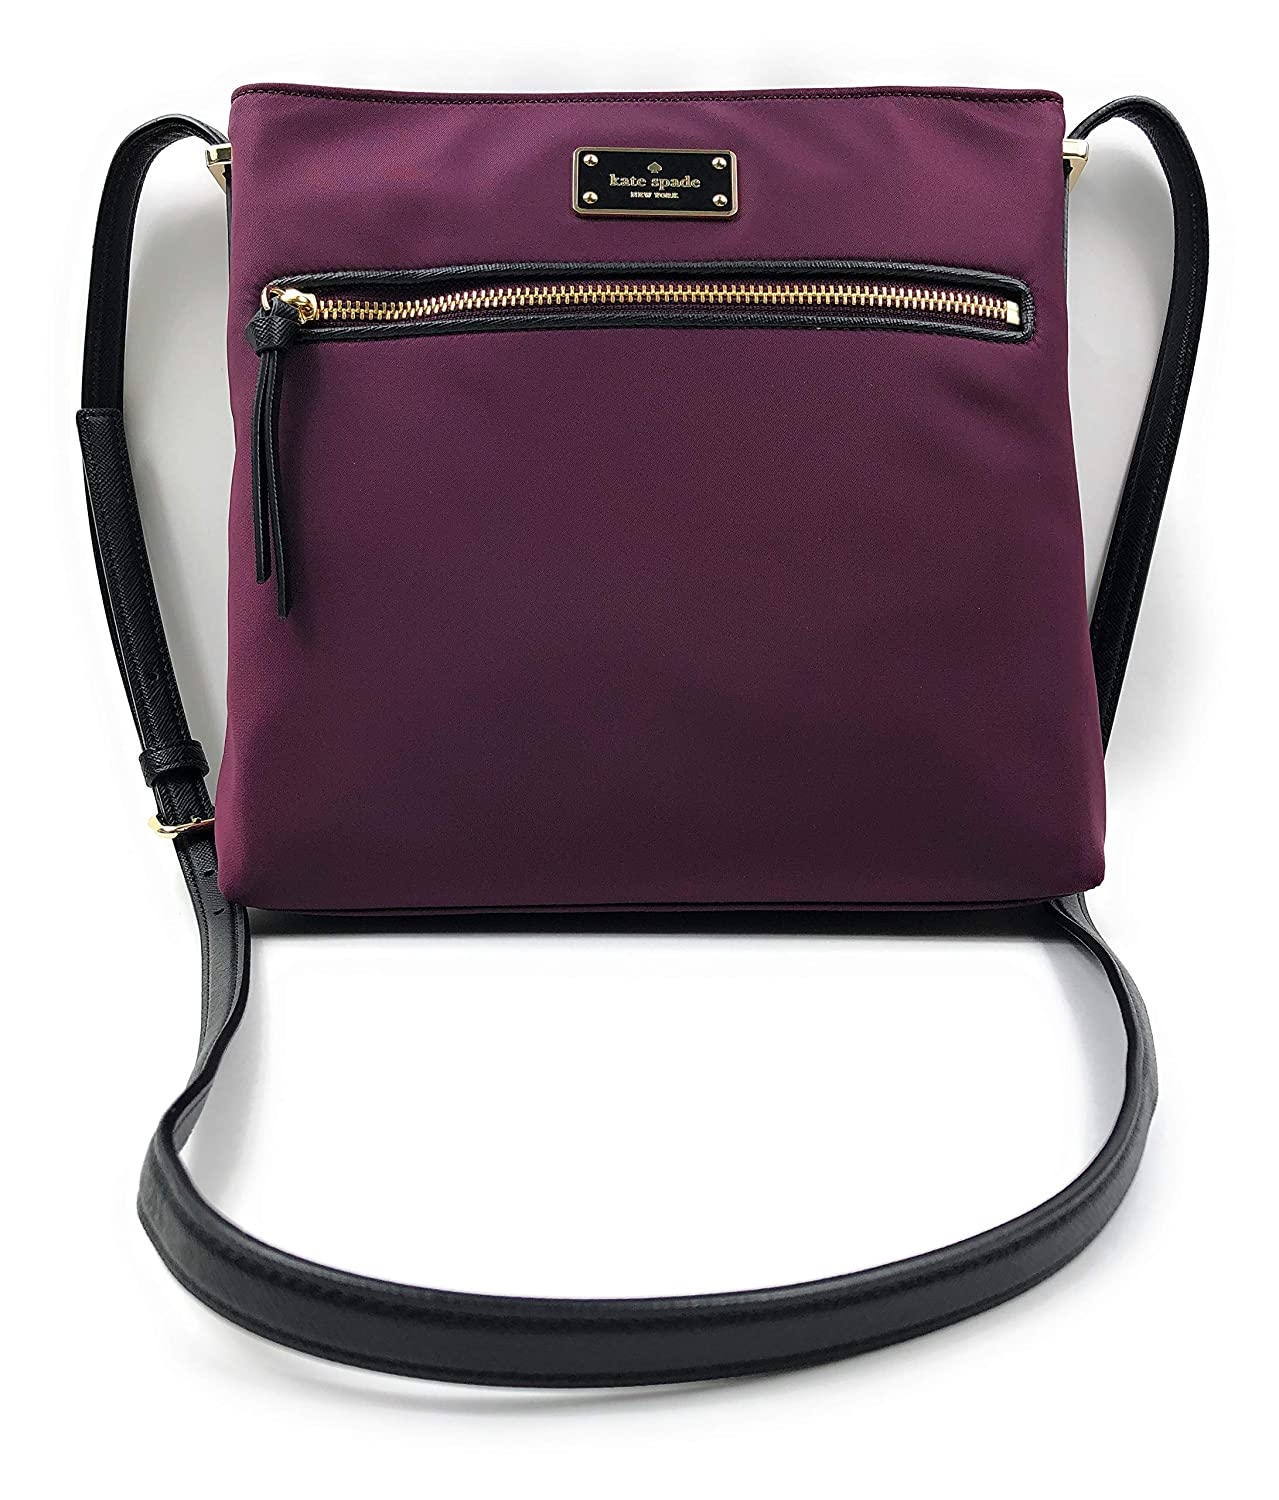 ddd16ce8fda73 Amazon.com  Kate Spade Wilson Road Nylon Dessi Nylon Crossbody Handbag Deep  Plum  Shoes